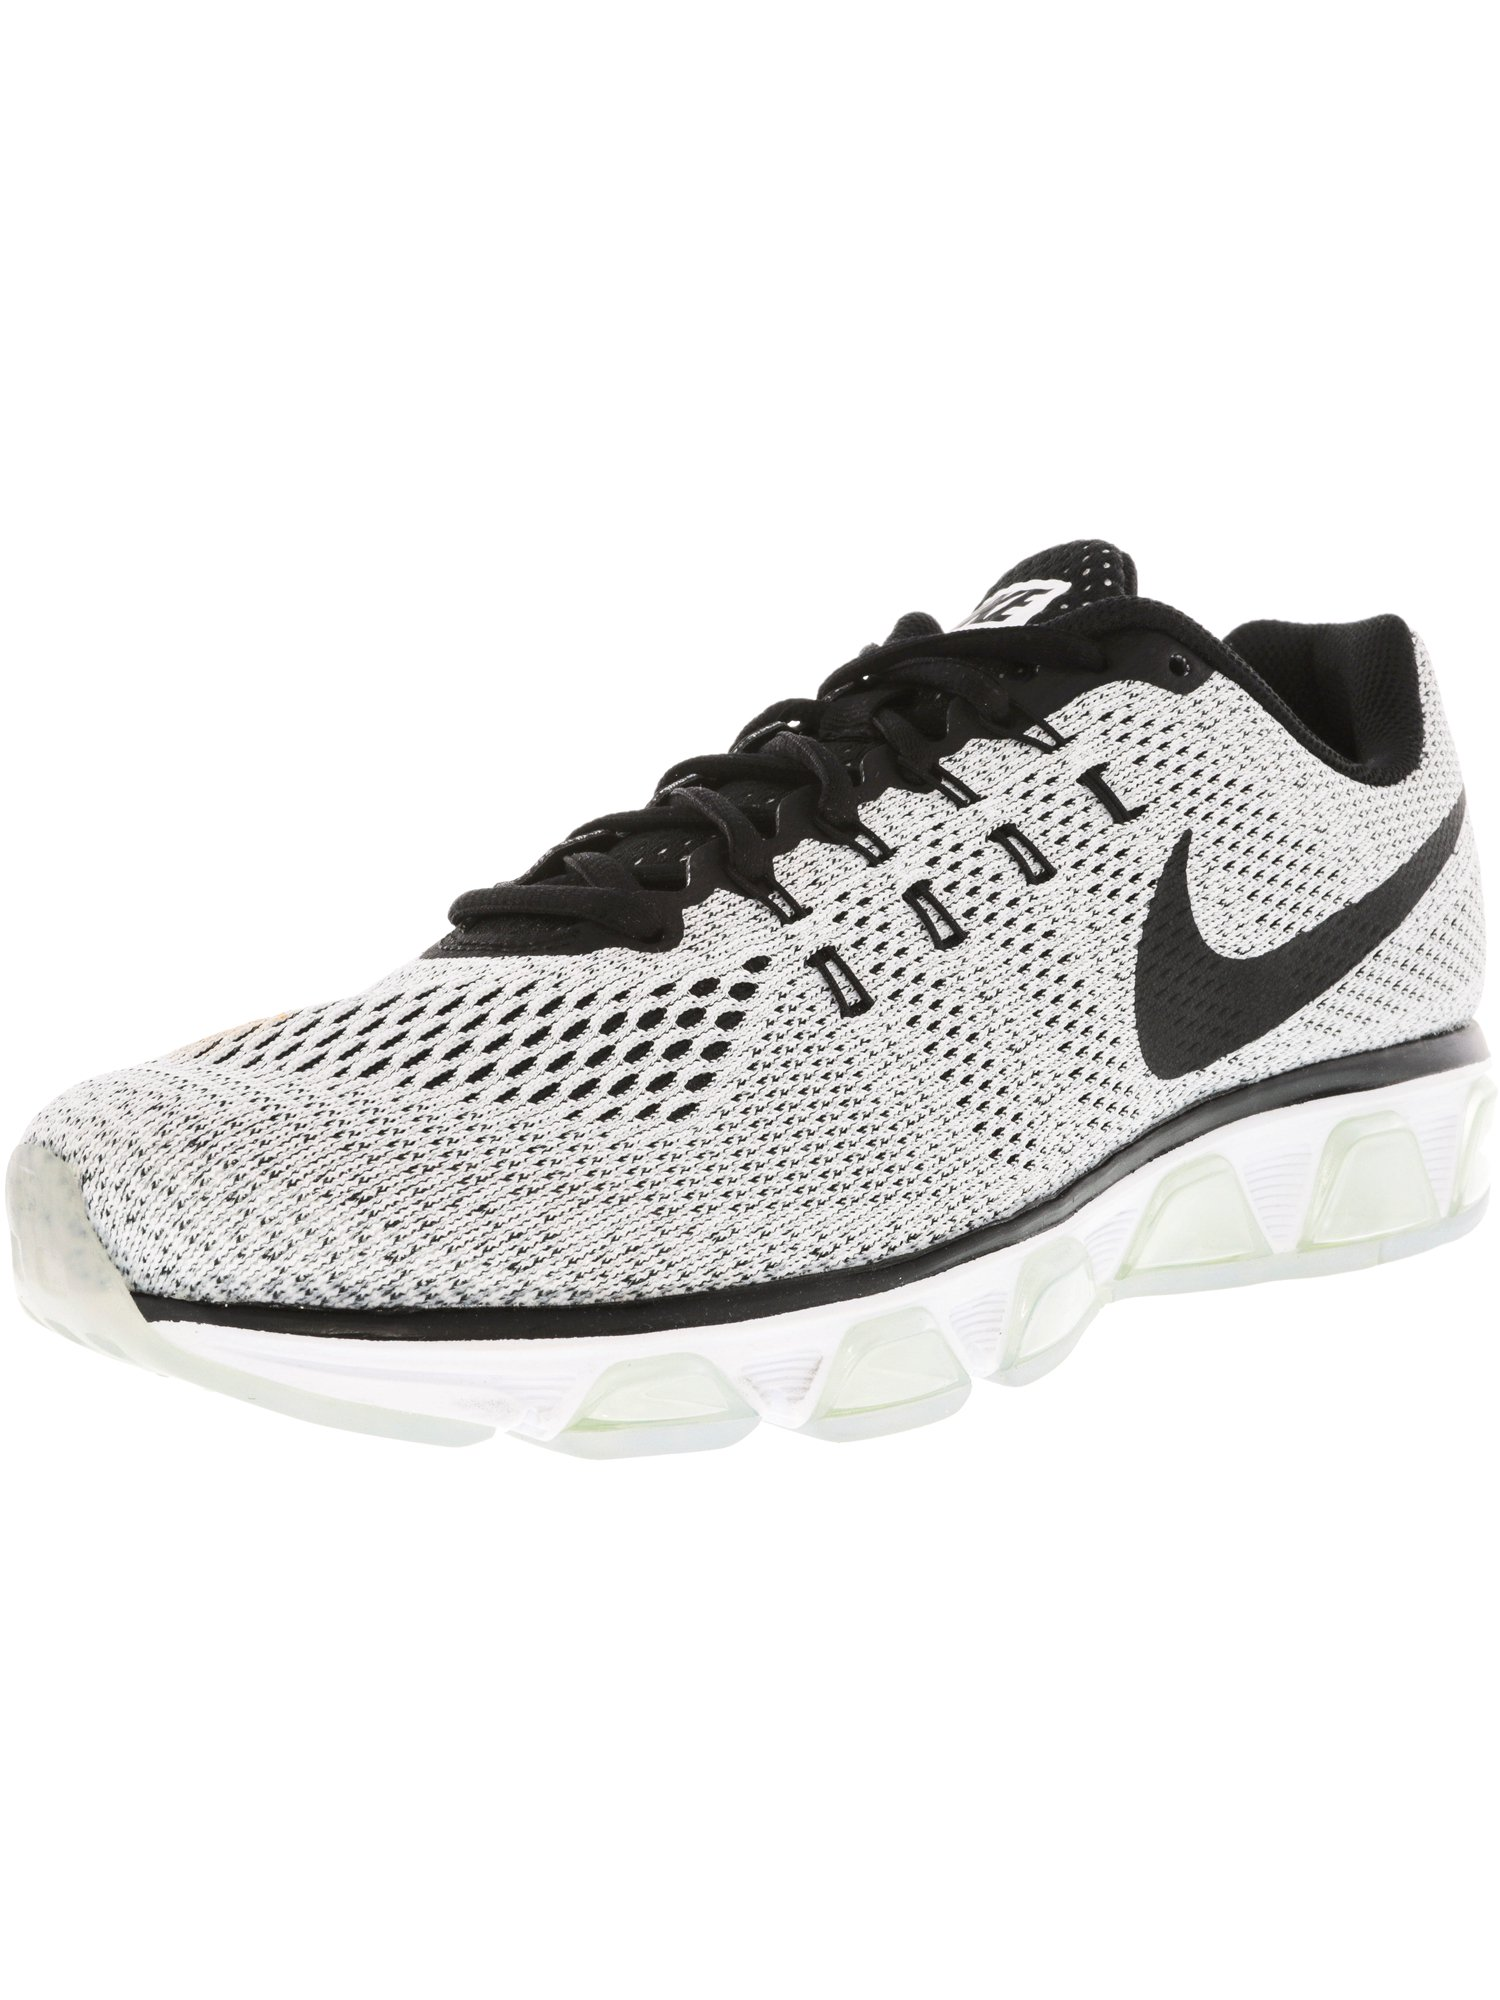 sale retailer 6a8b9 de378 Nike Men's Air Max Tailwind 8 White / Black Ankle-High ...